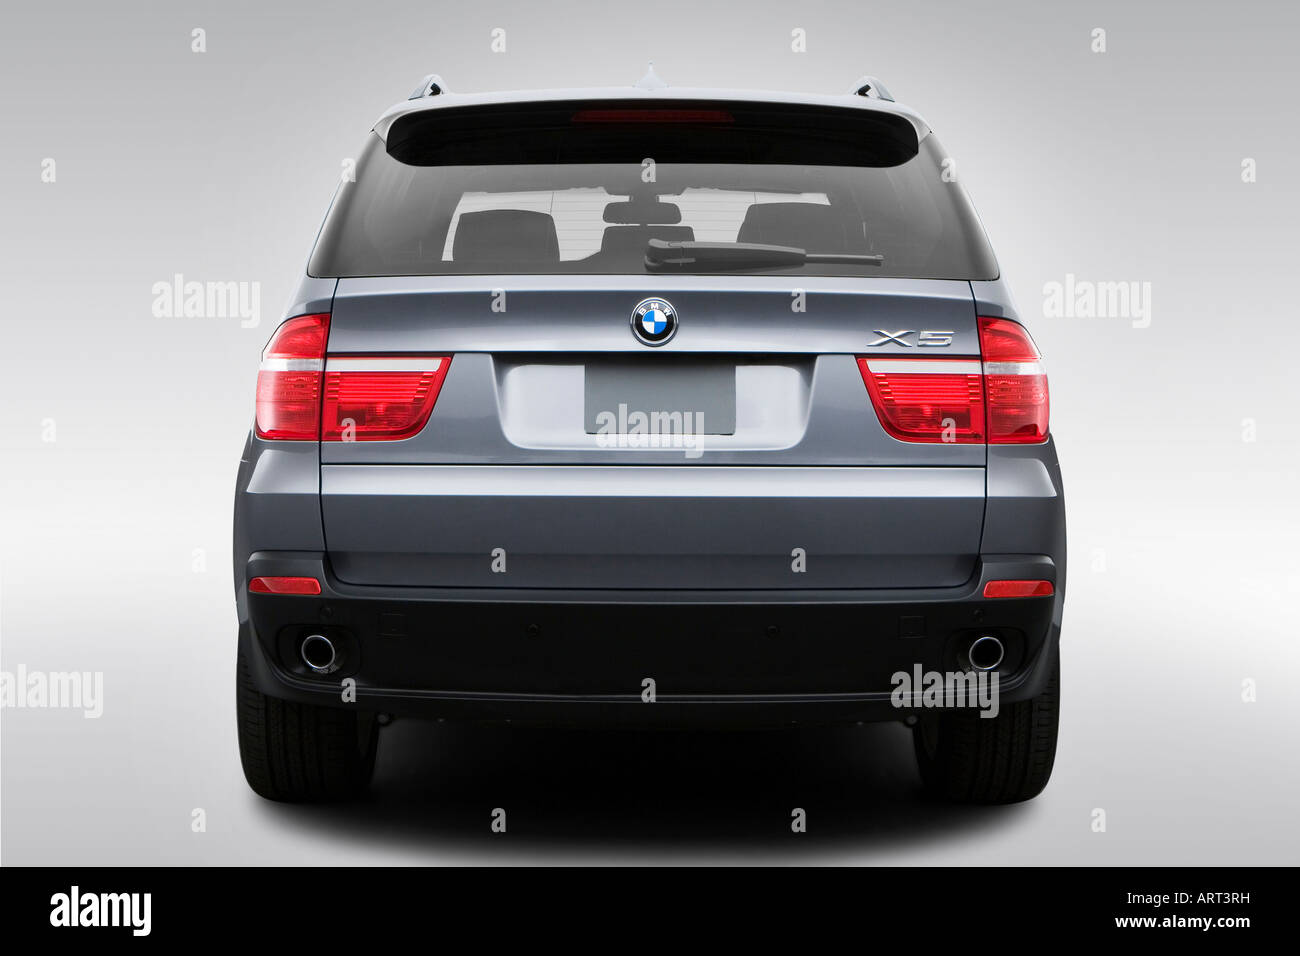 2008 bmw x5 3.0si in gray - low/wide rear stock photo, royalty